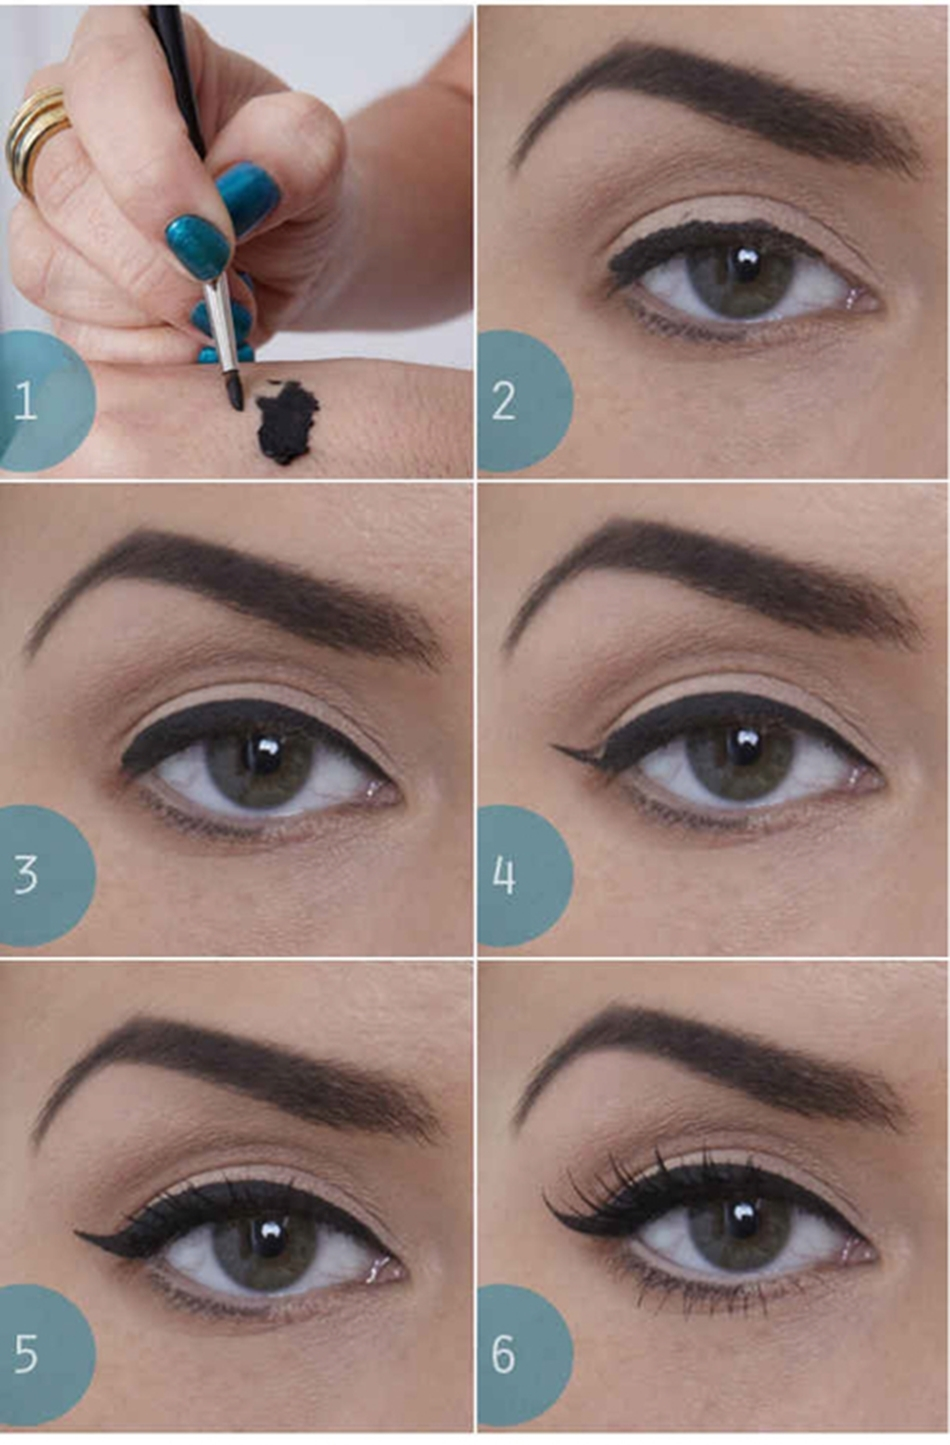 Basic Makeup Essentials For Teens: 10 Stunningly Simple Tutorials For The Best Eye Makeup